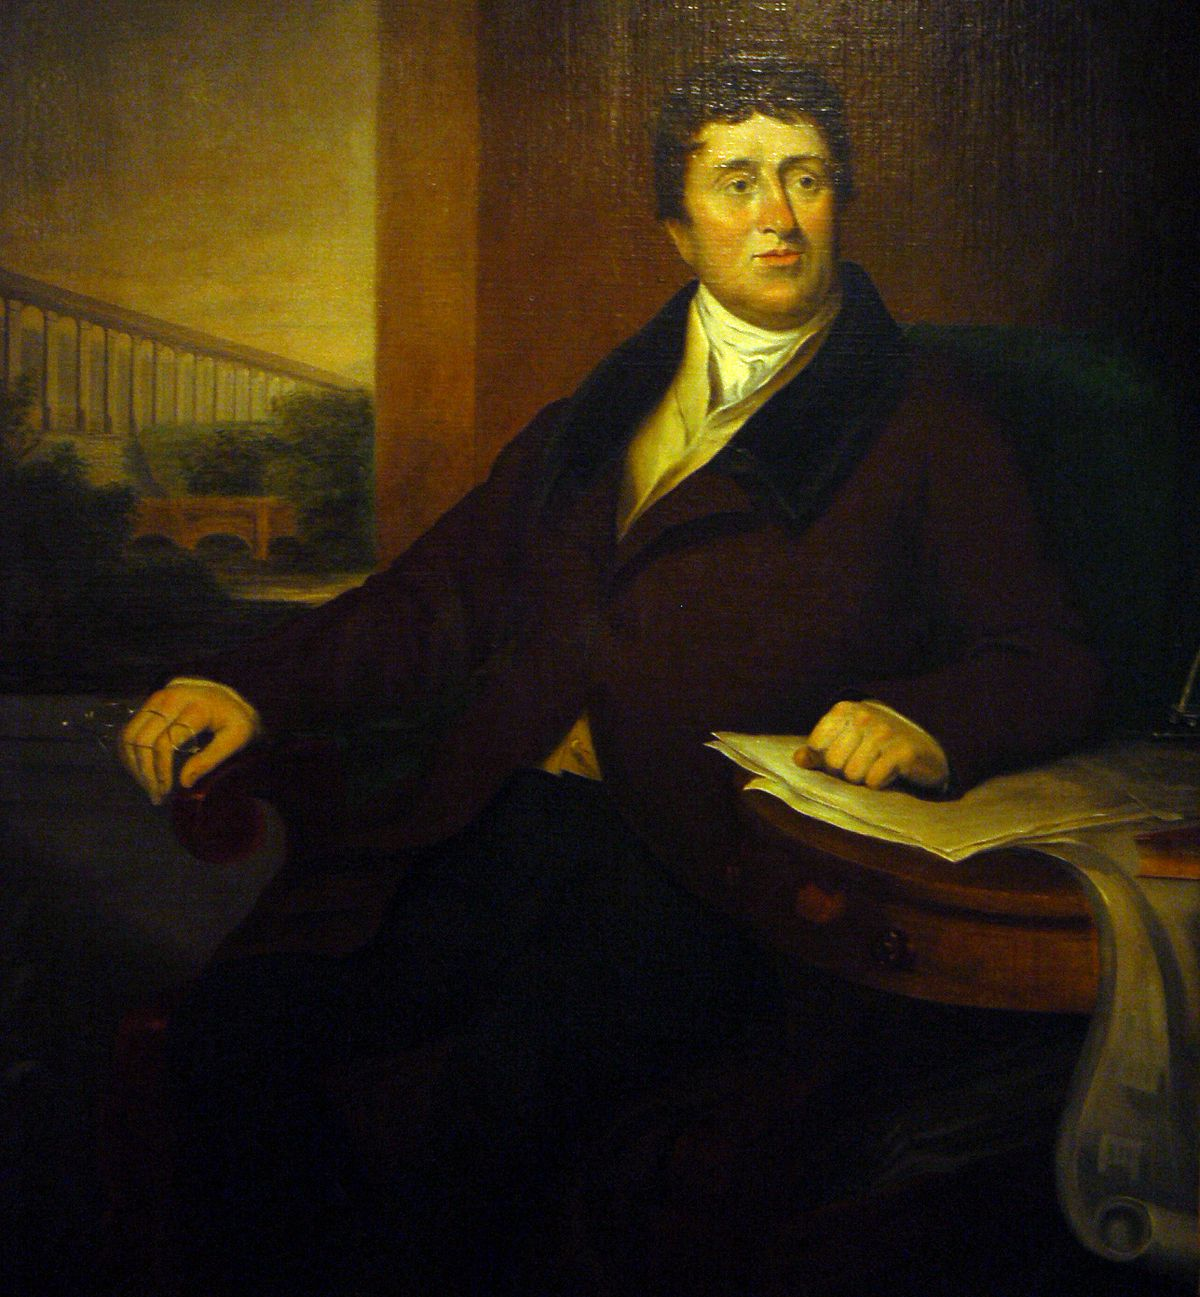 Thomas Telford often gets credited for the 18th century work at the castle.